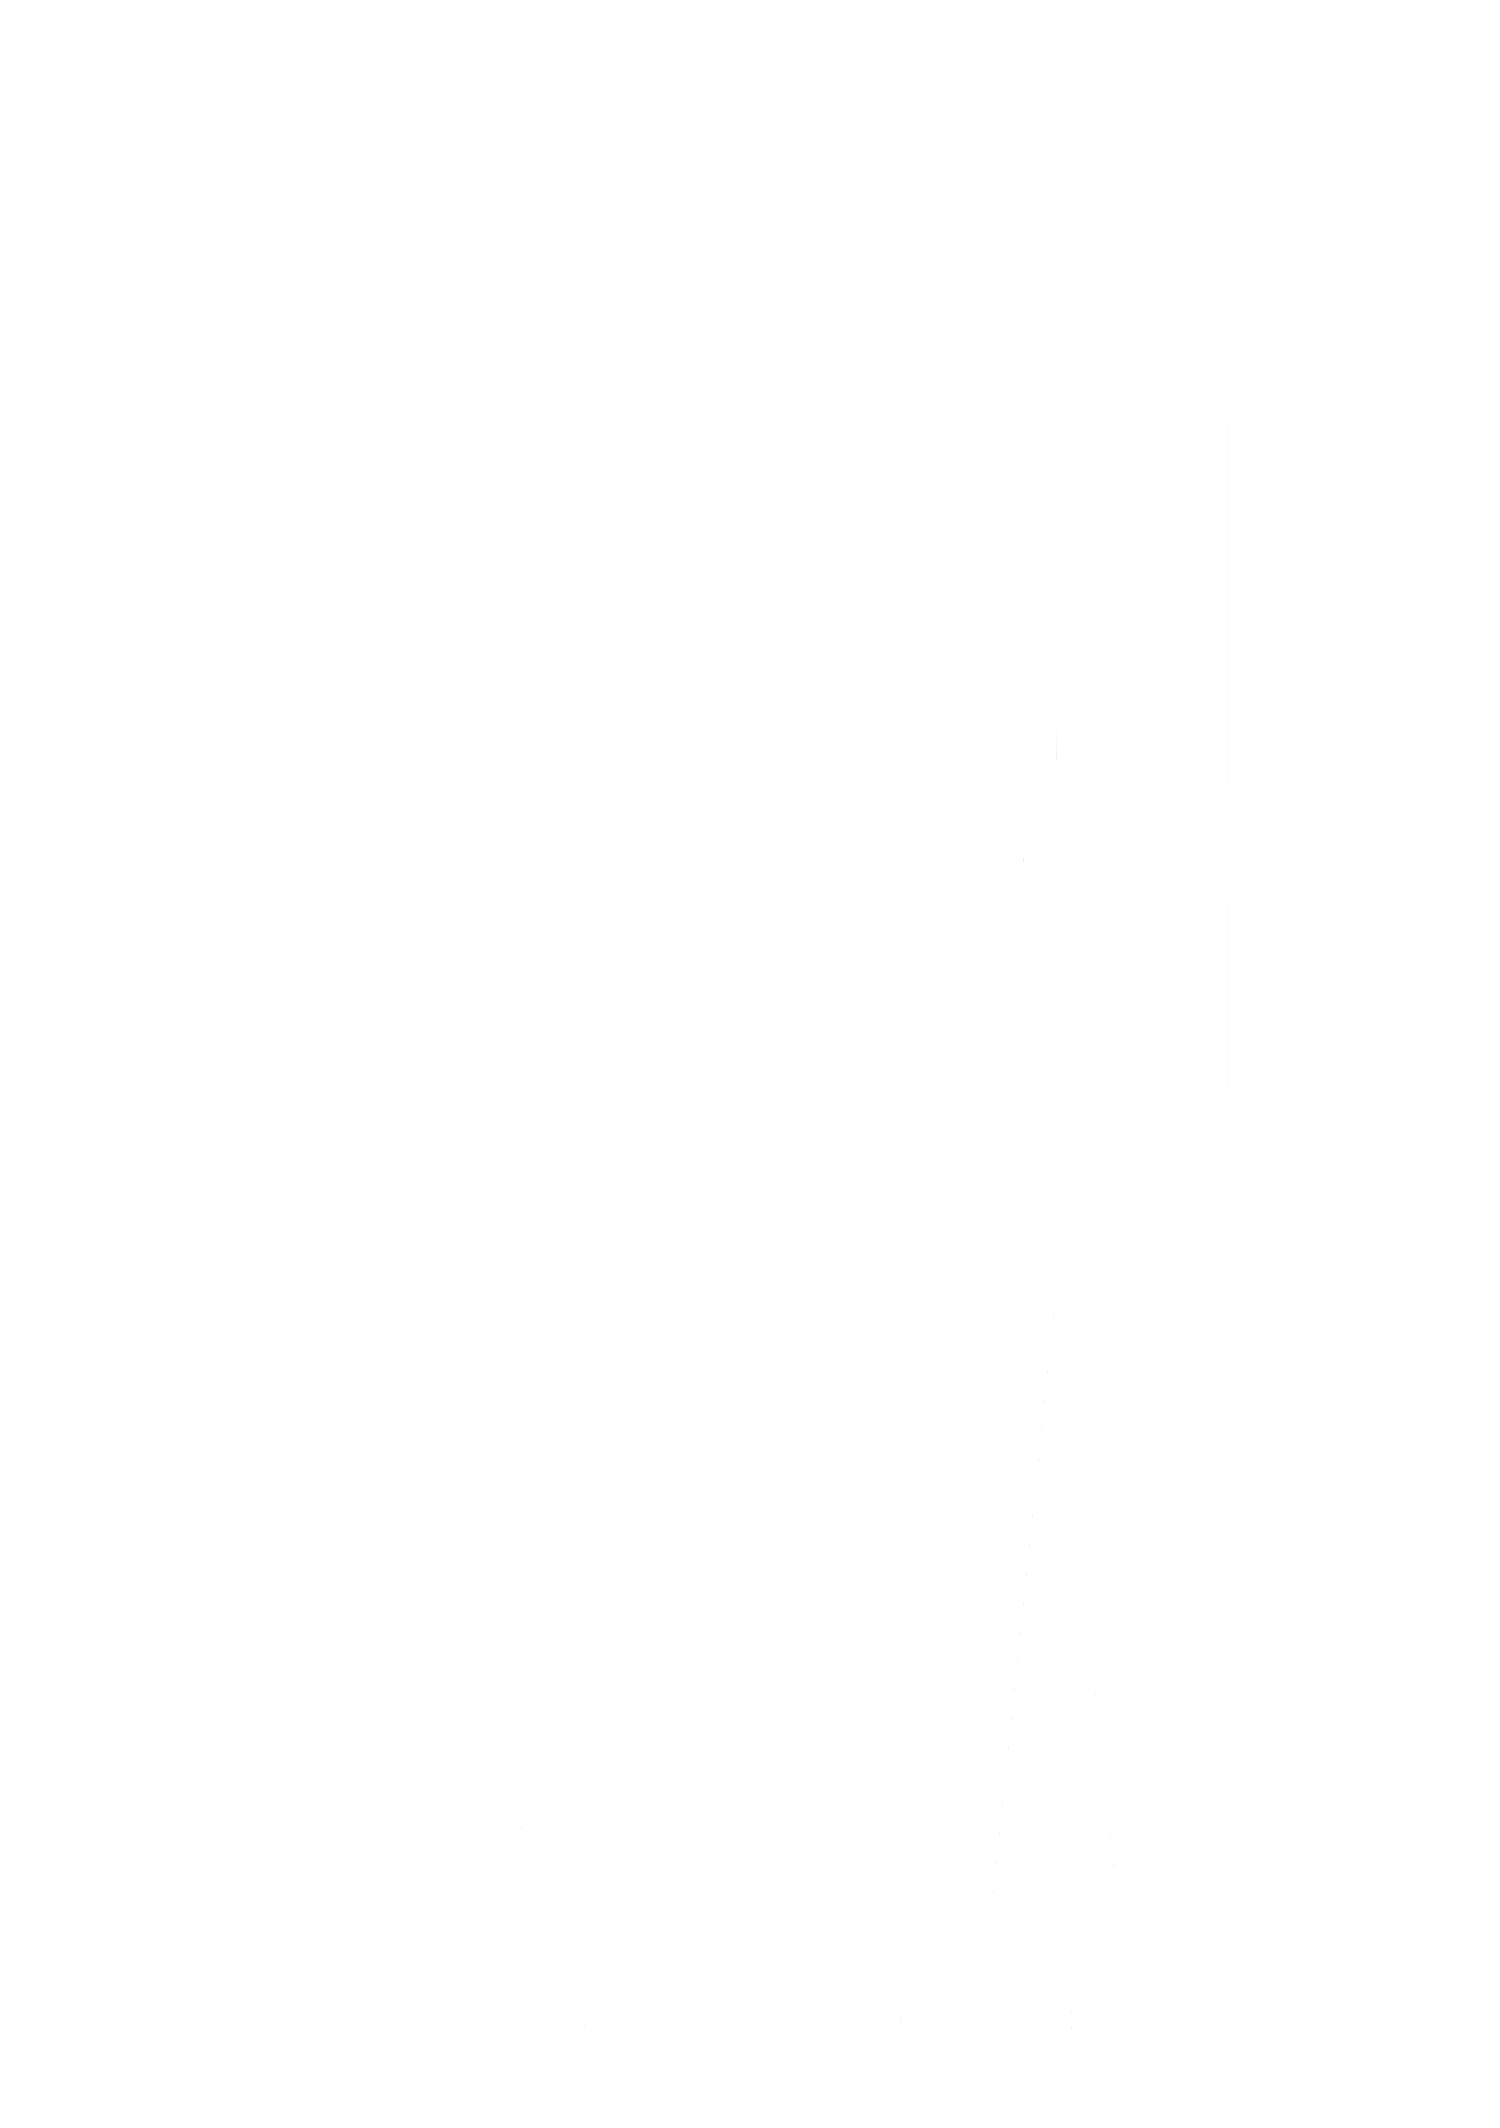 Old Goats Hard Goods